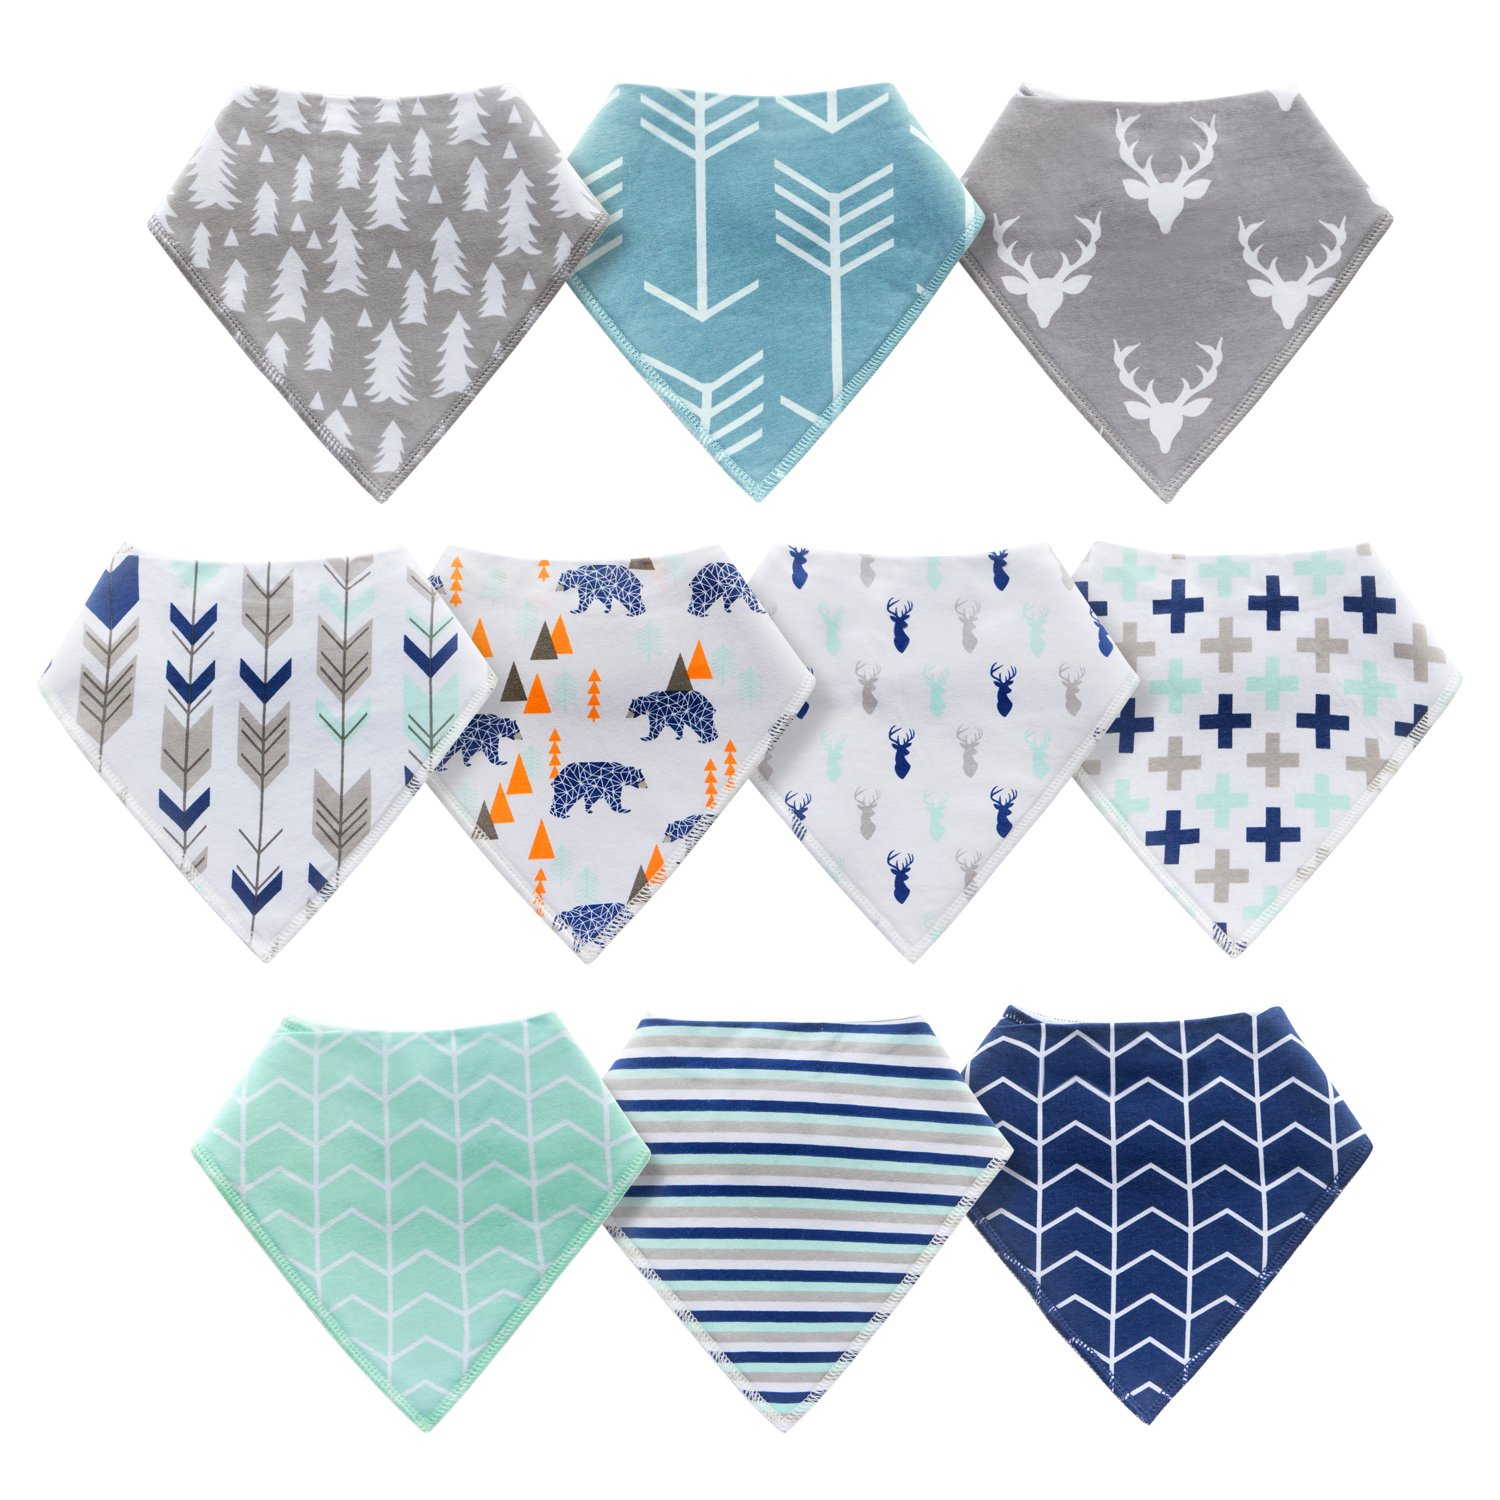 10-Pack Baby Bandana Drool Bibs for Drooling and Teething Boys Girls by MiiYoung by MiiYoung (Image #2)